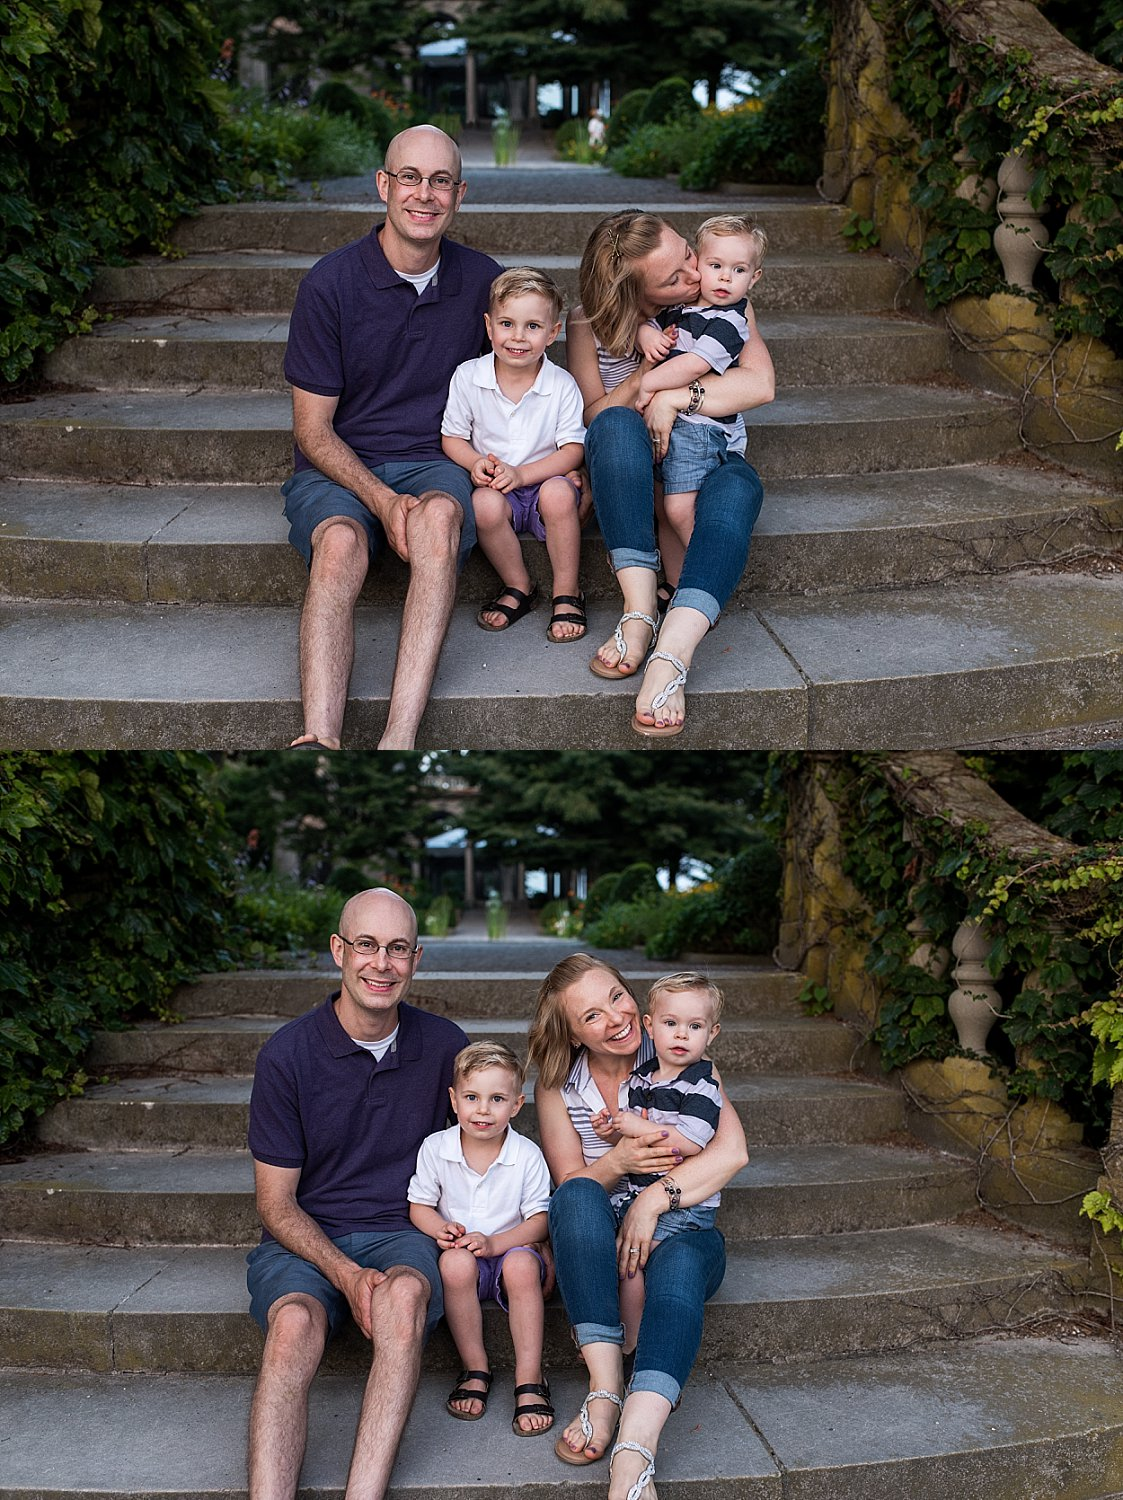 Family portrait photographer in Waterford, Connecticut